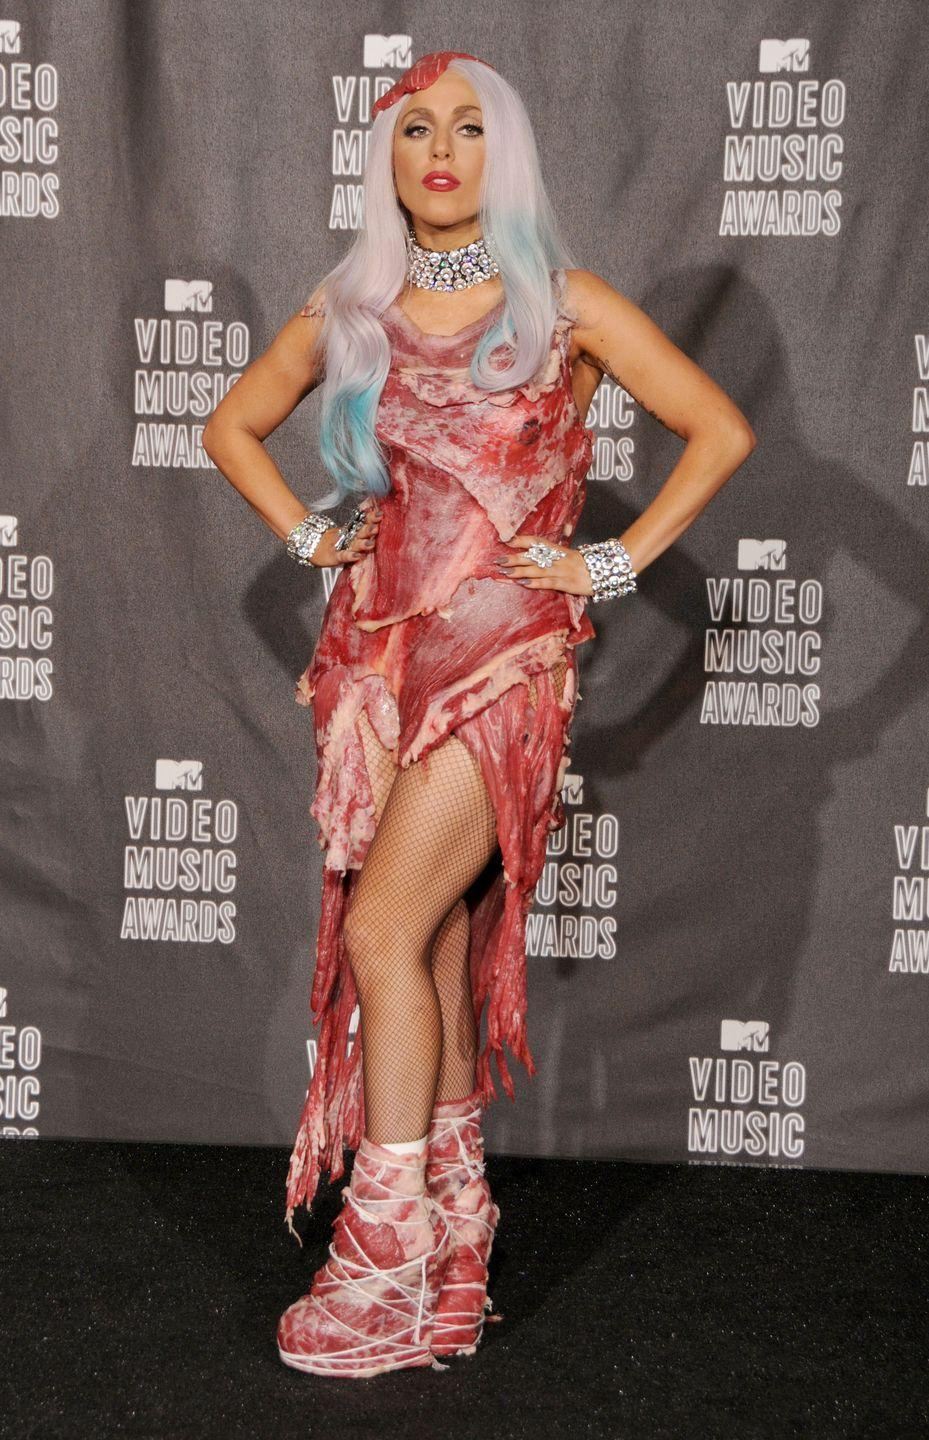 <p>Lady Gaga's infamous meat dress will remain burned in our minds for years to come.</p>